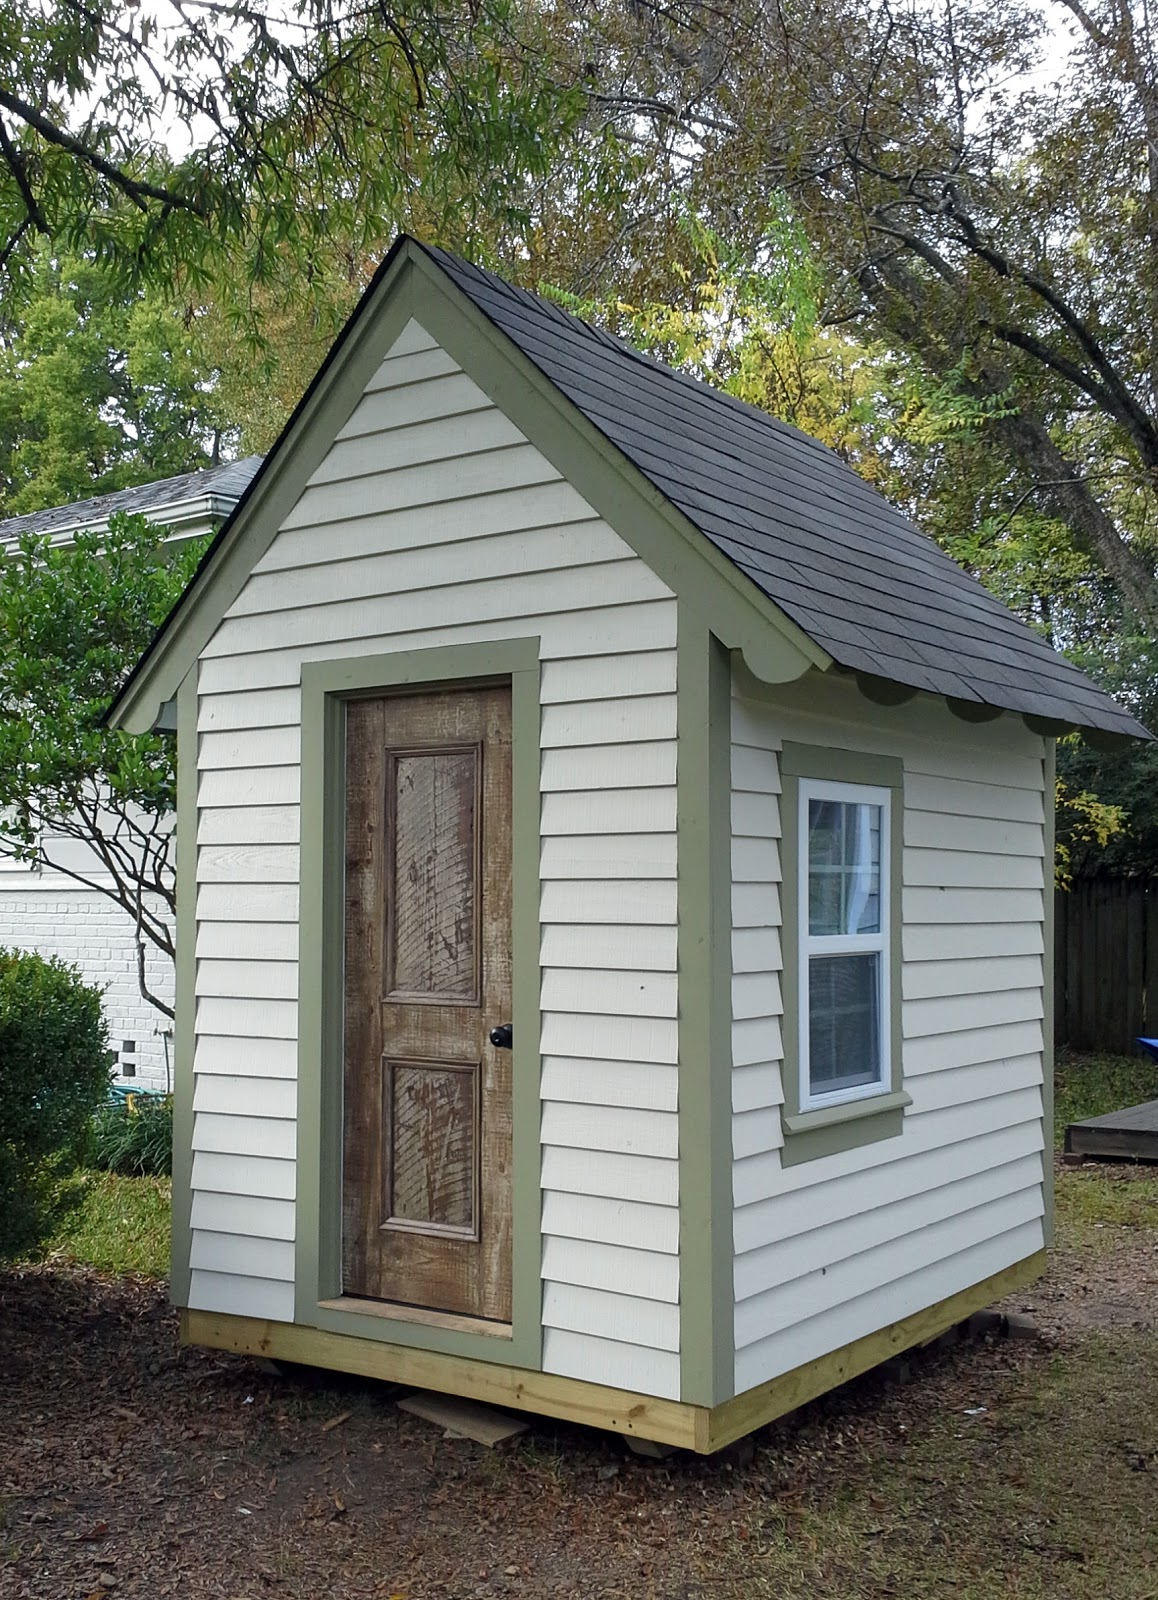 Aplaceimagined free playhouse plans for Free playhouse blueprints